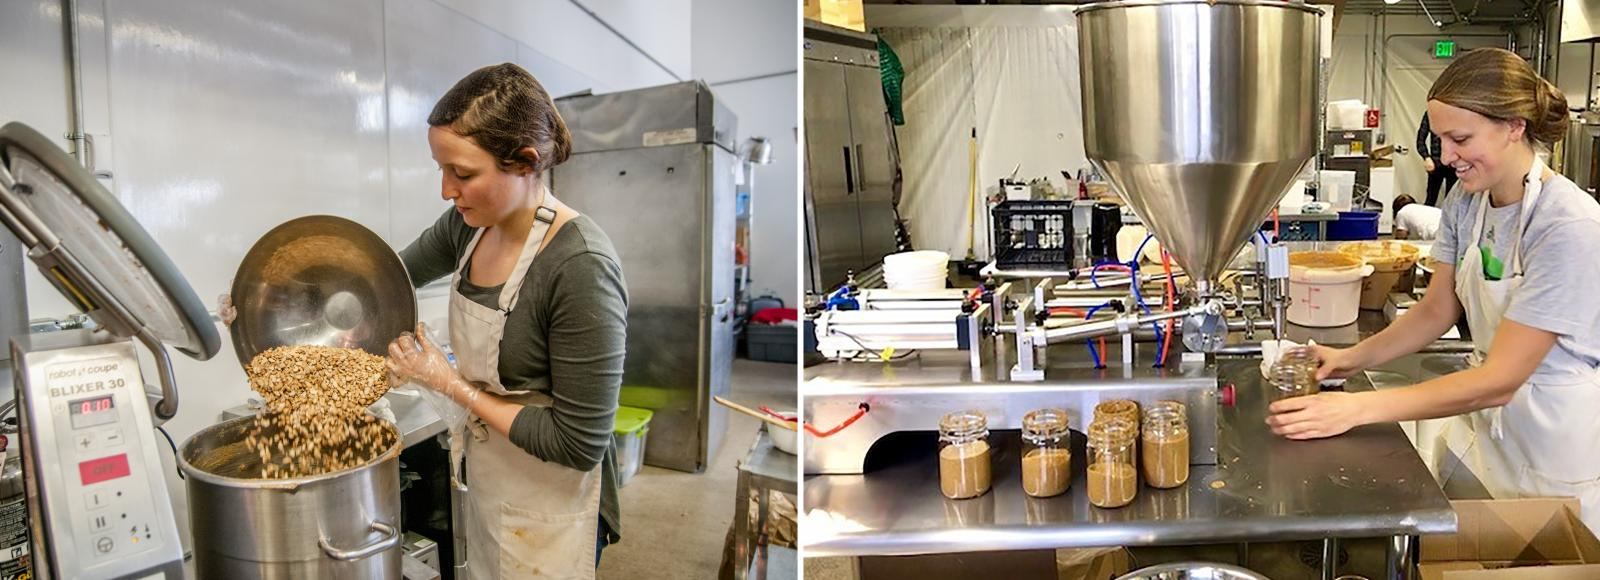 Two photos side-by-side. The left image shows a woman wearing an apron, hair net, and a long-sleeved T-shirt pouring a large stainless steel bowl of cashews into a stainless steel machine. The right photo shows a different woman also wearing an apron, hair net, and gray T-shirt using a machine to fill jars with nut butter.